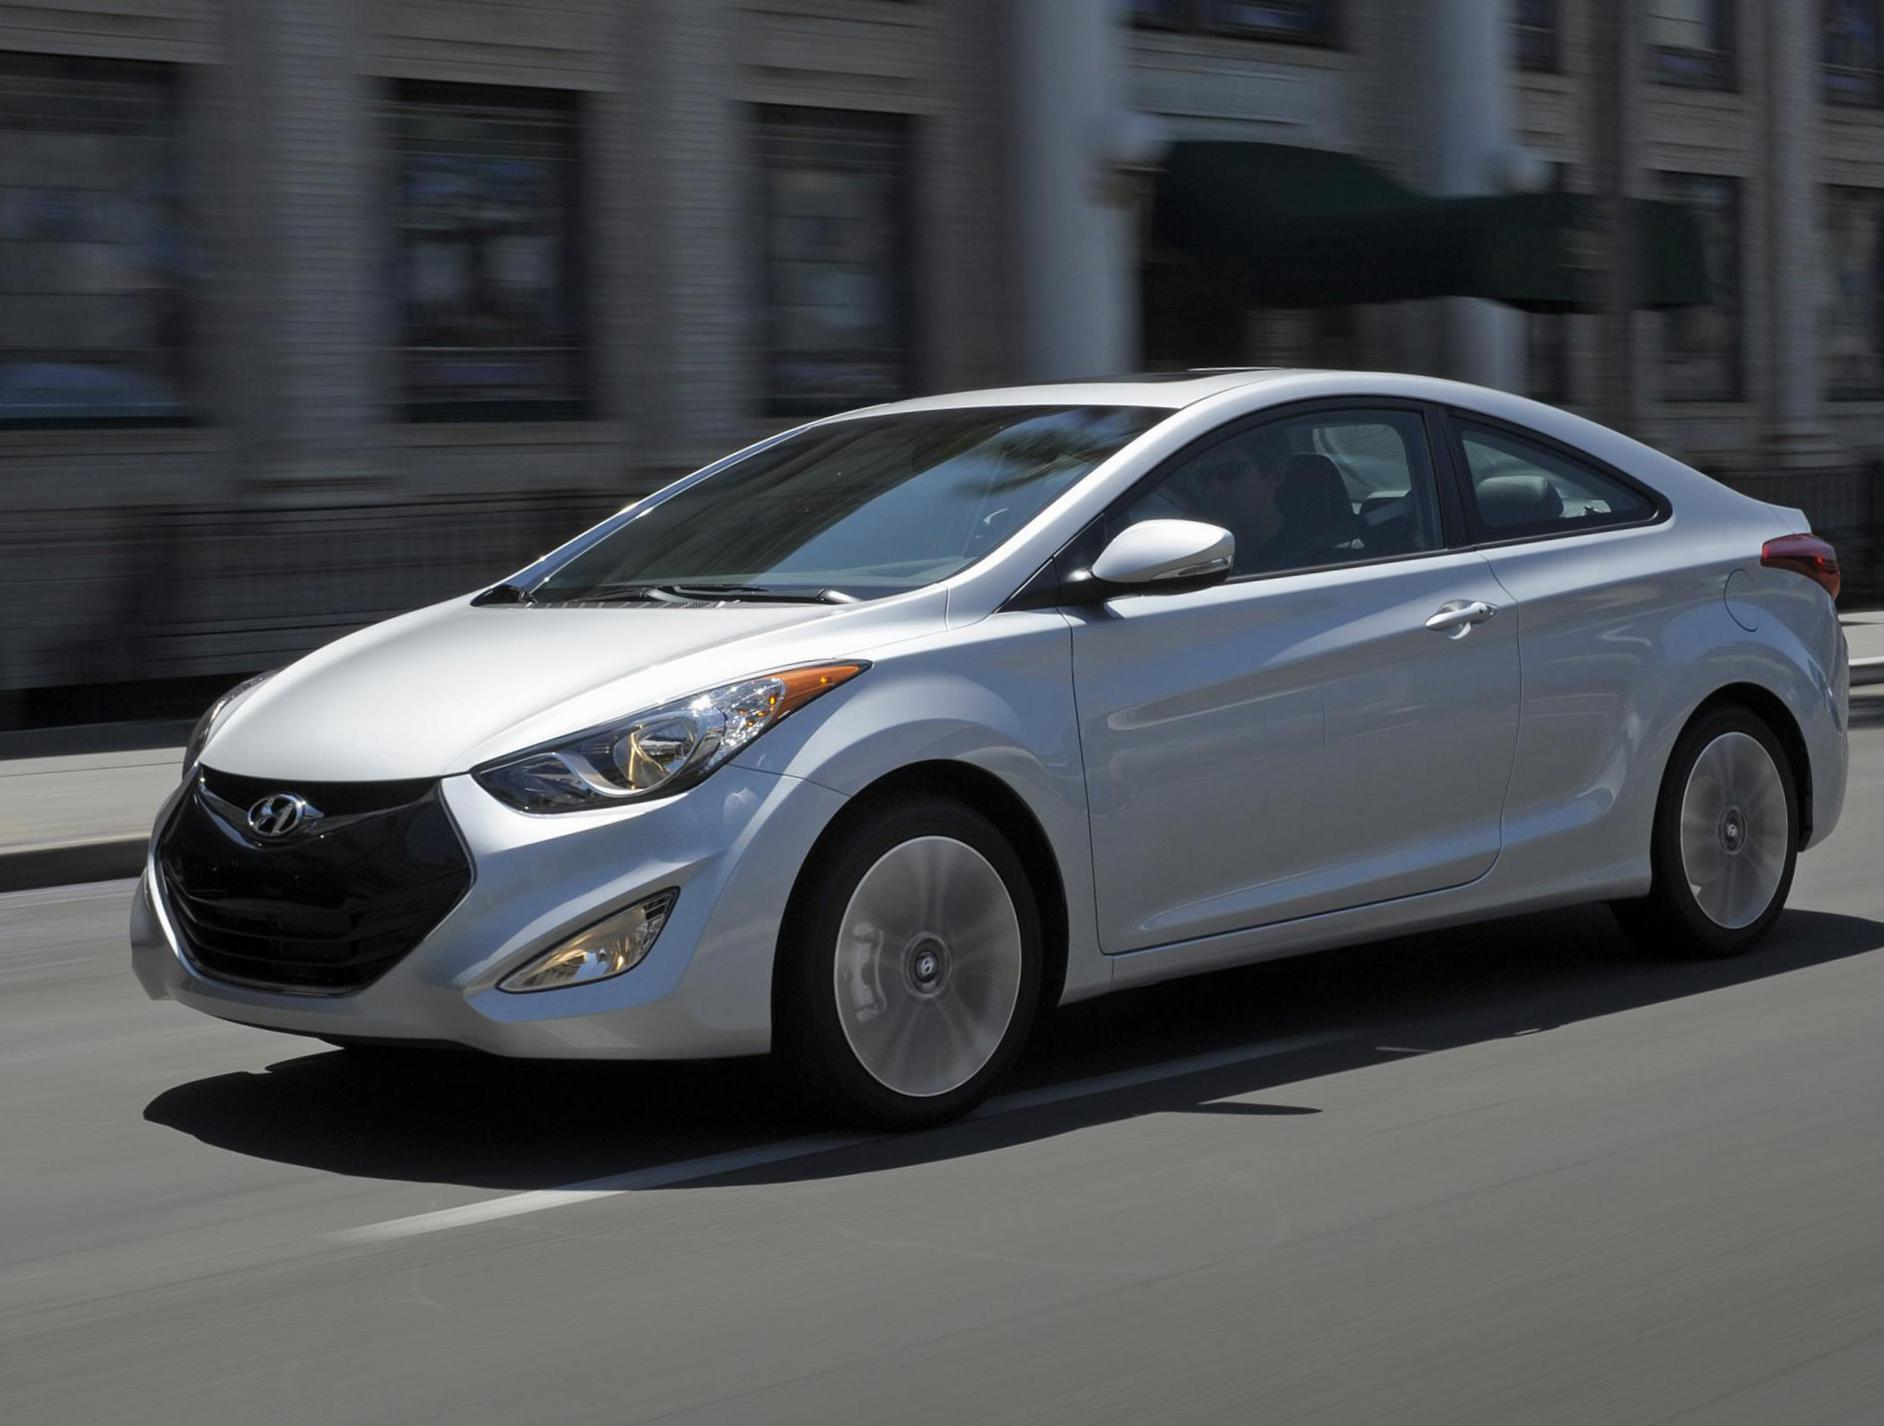 Elantra Coupe Hyundai Specifications 2012